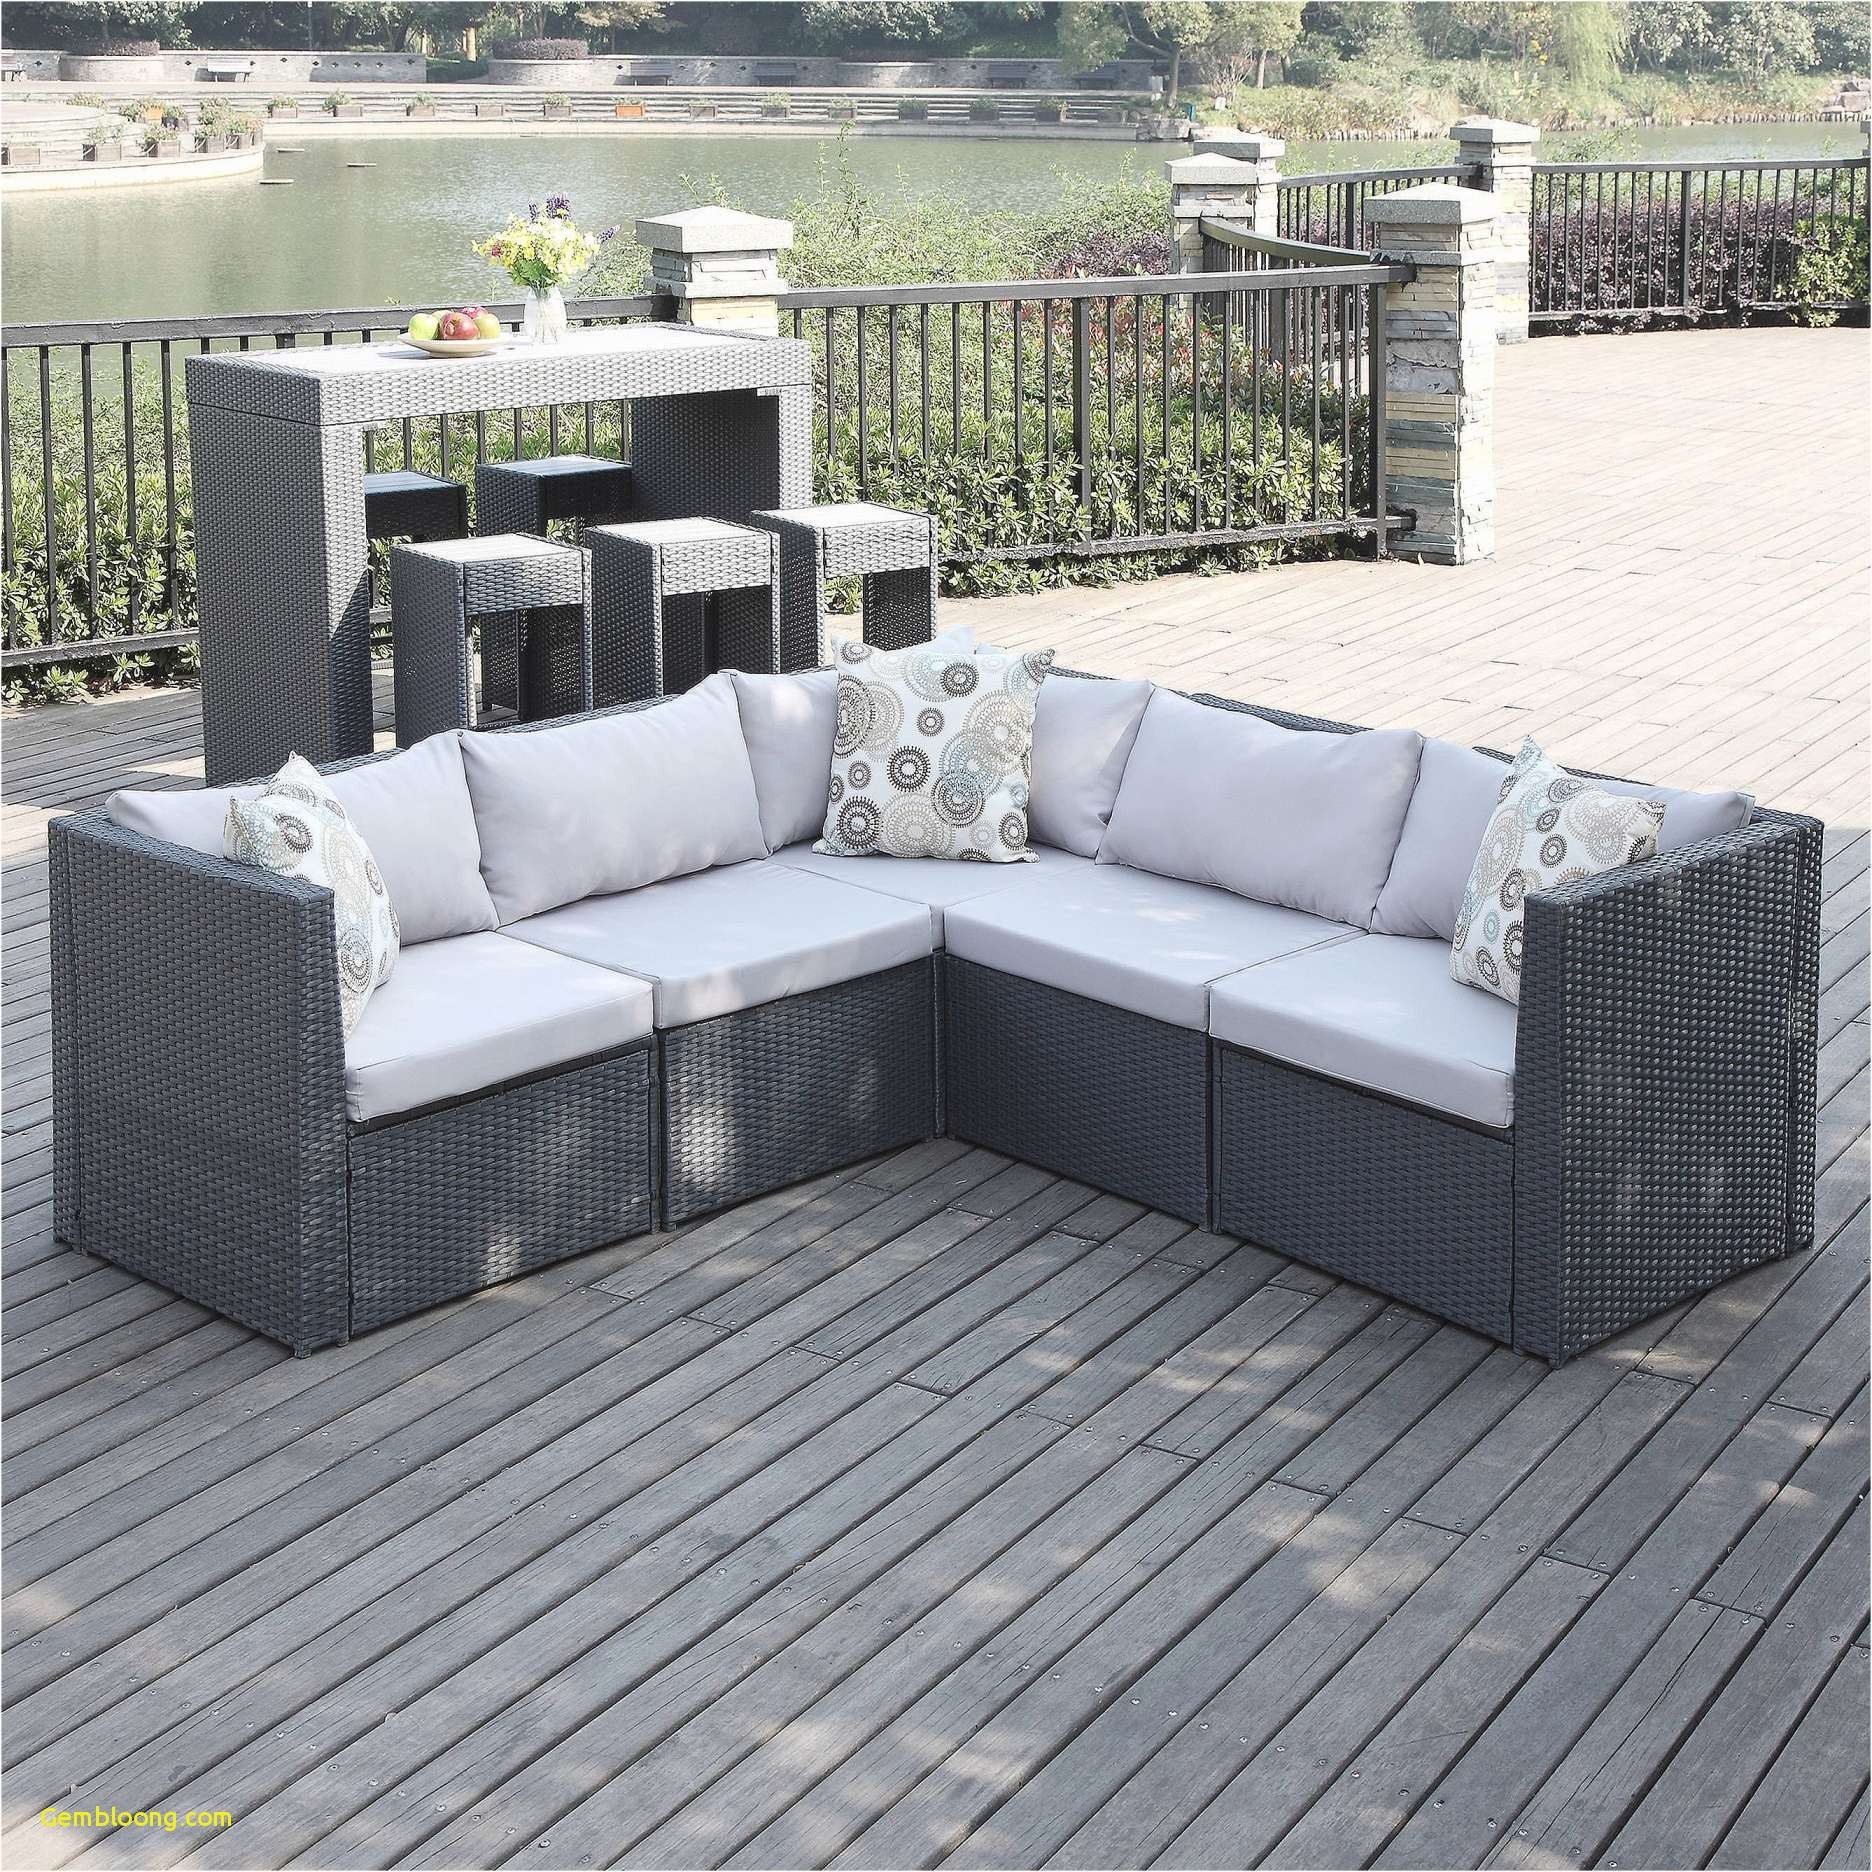 home depot outdoor vases of home depot furniture sale www topsimages com within home depot patio furniture sale elegant outdoor cushions elegant wicker outdoor sofa patio chairs sale jpg